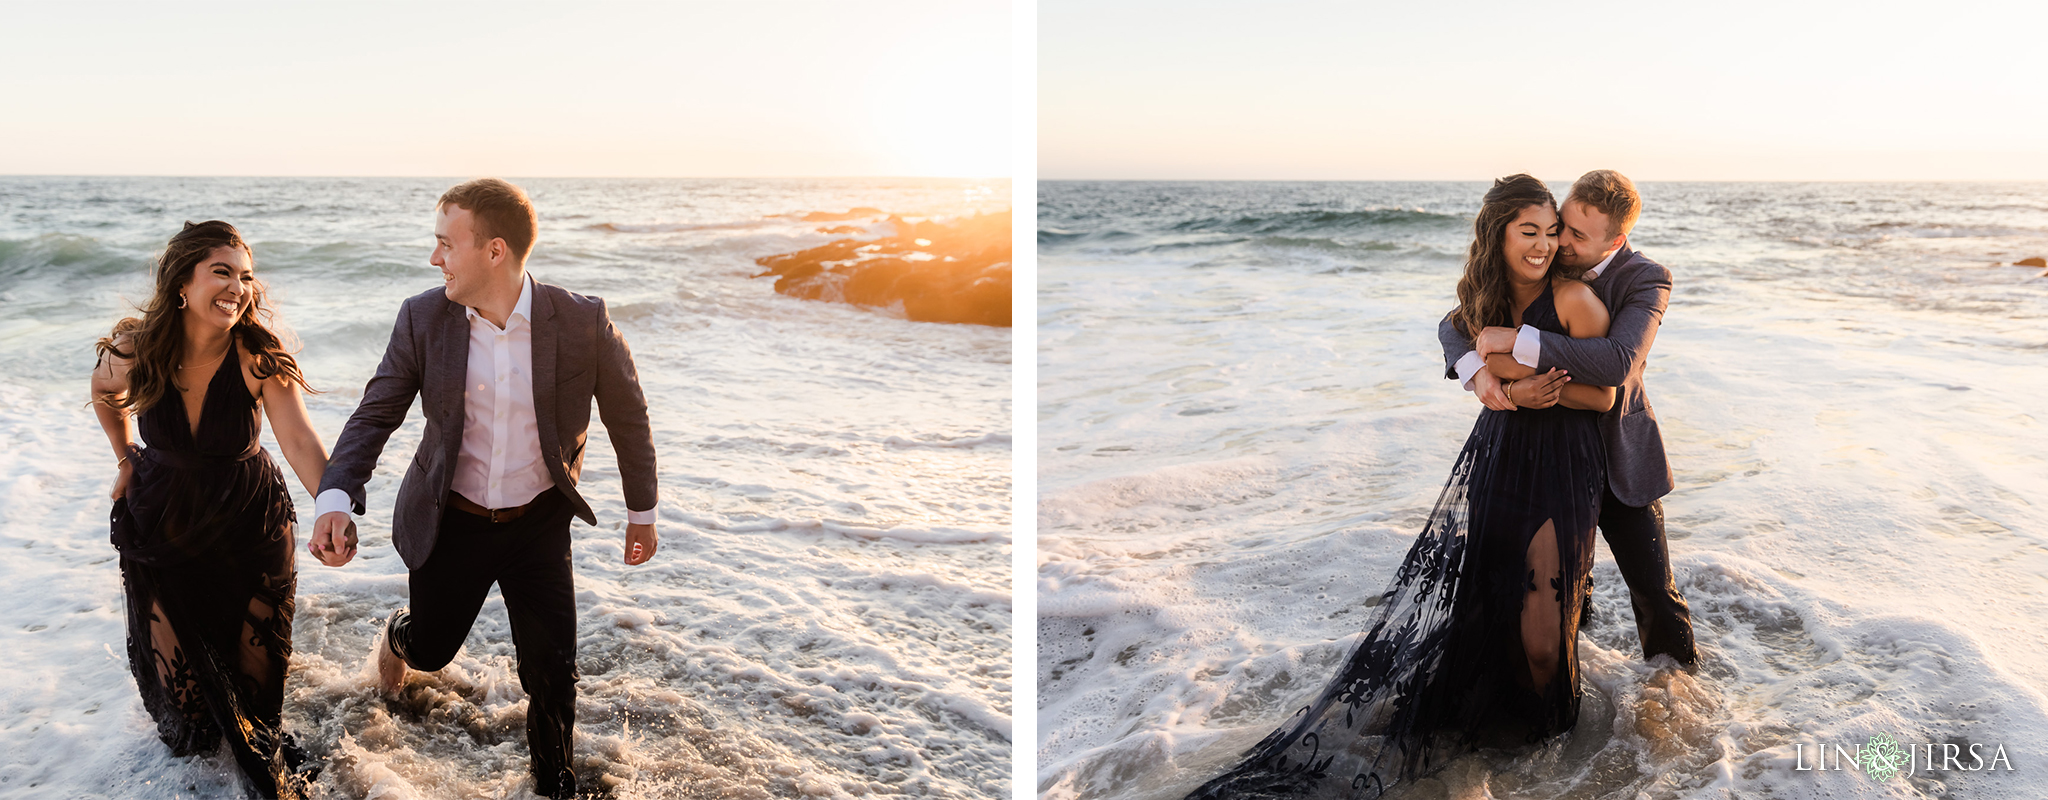 10 Laguna Beach Sunset Orange County Engagement Photographer